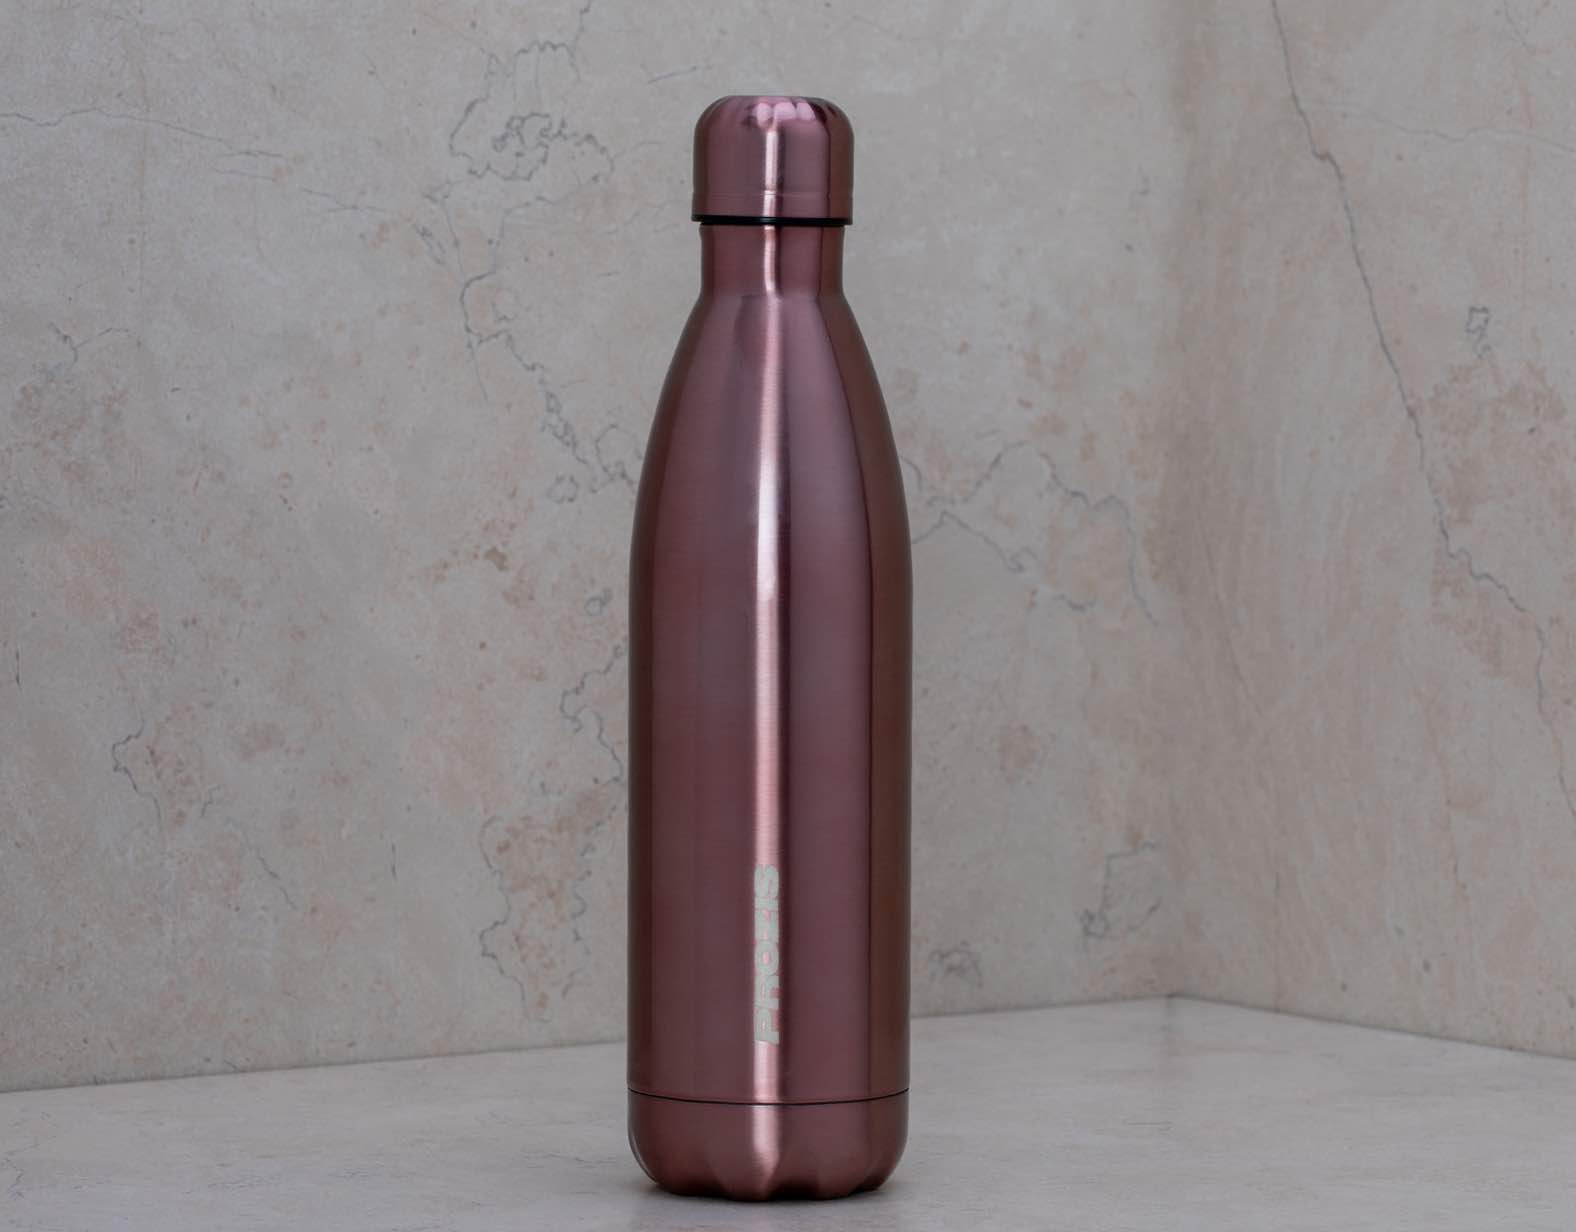 Kool Bottle Jewel 750 mL